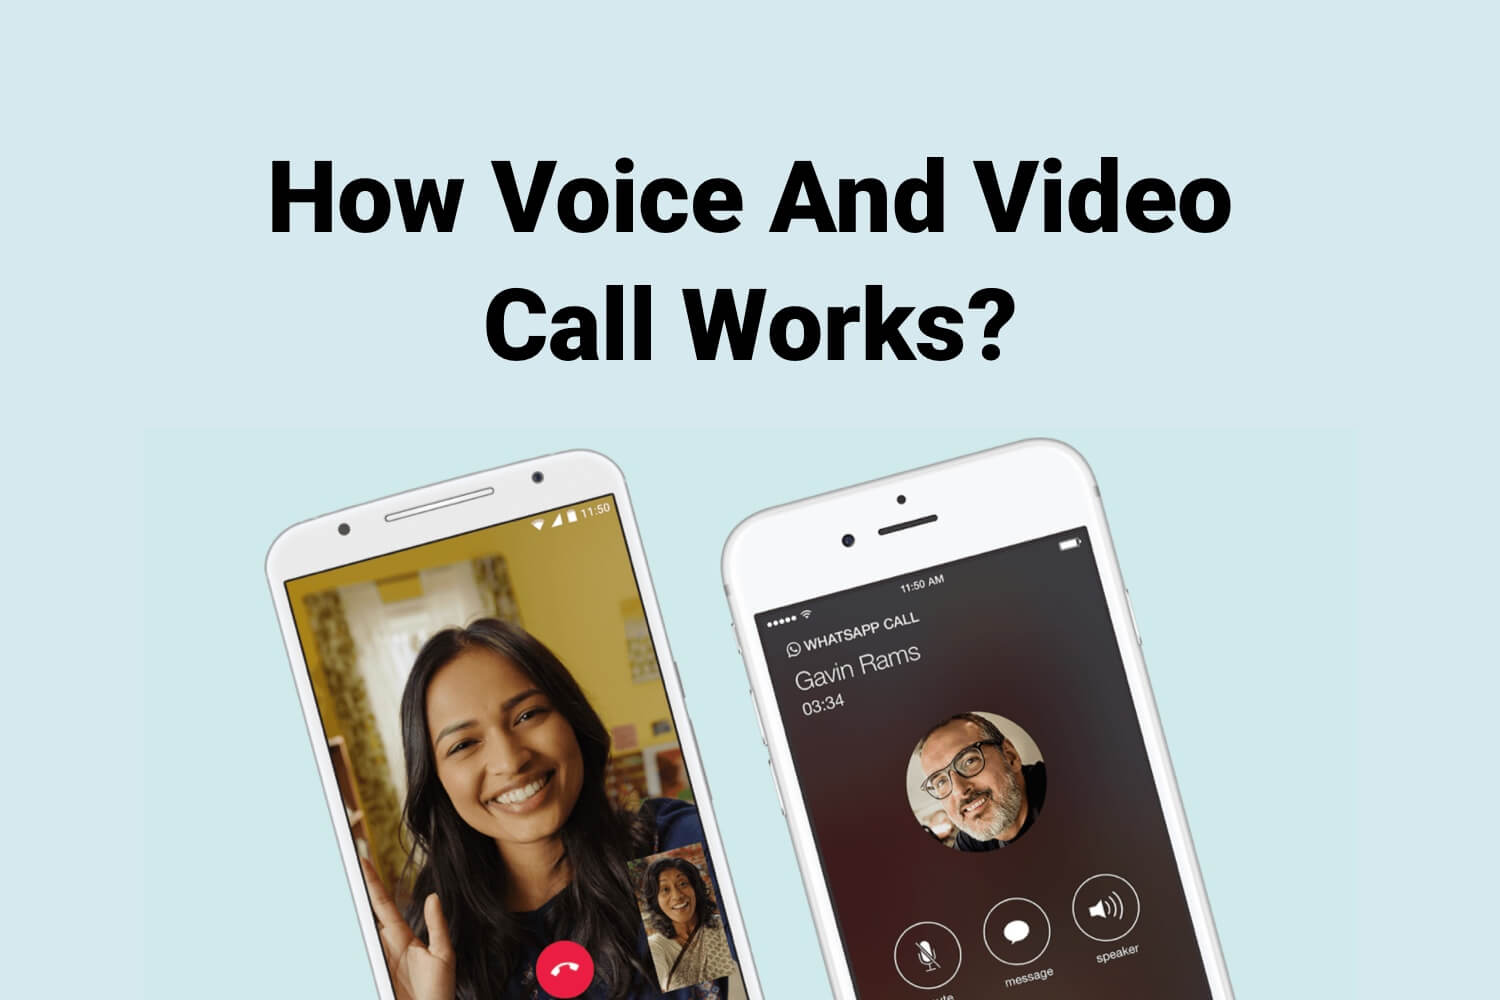 How Voice And Video Call Works?